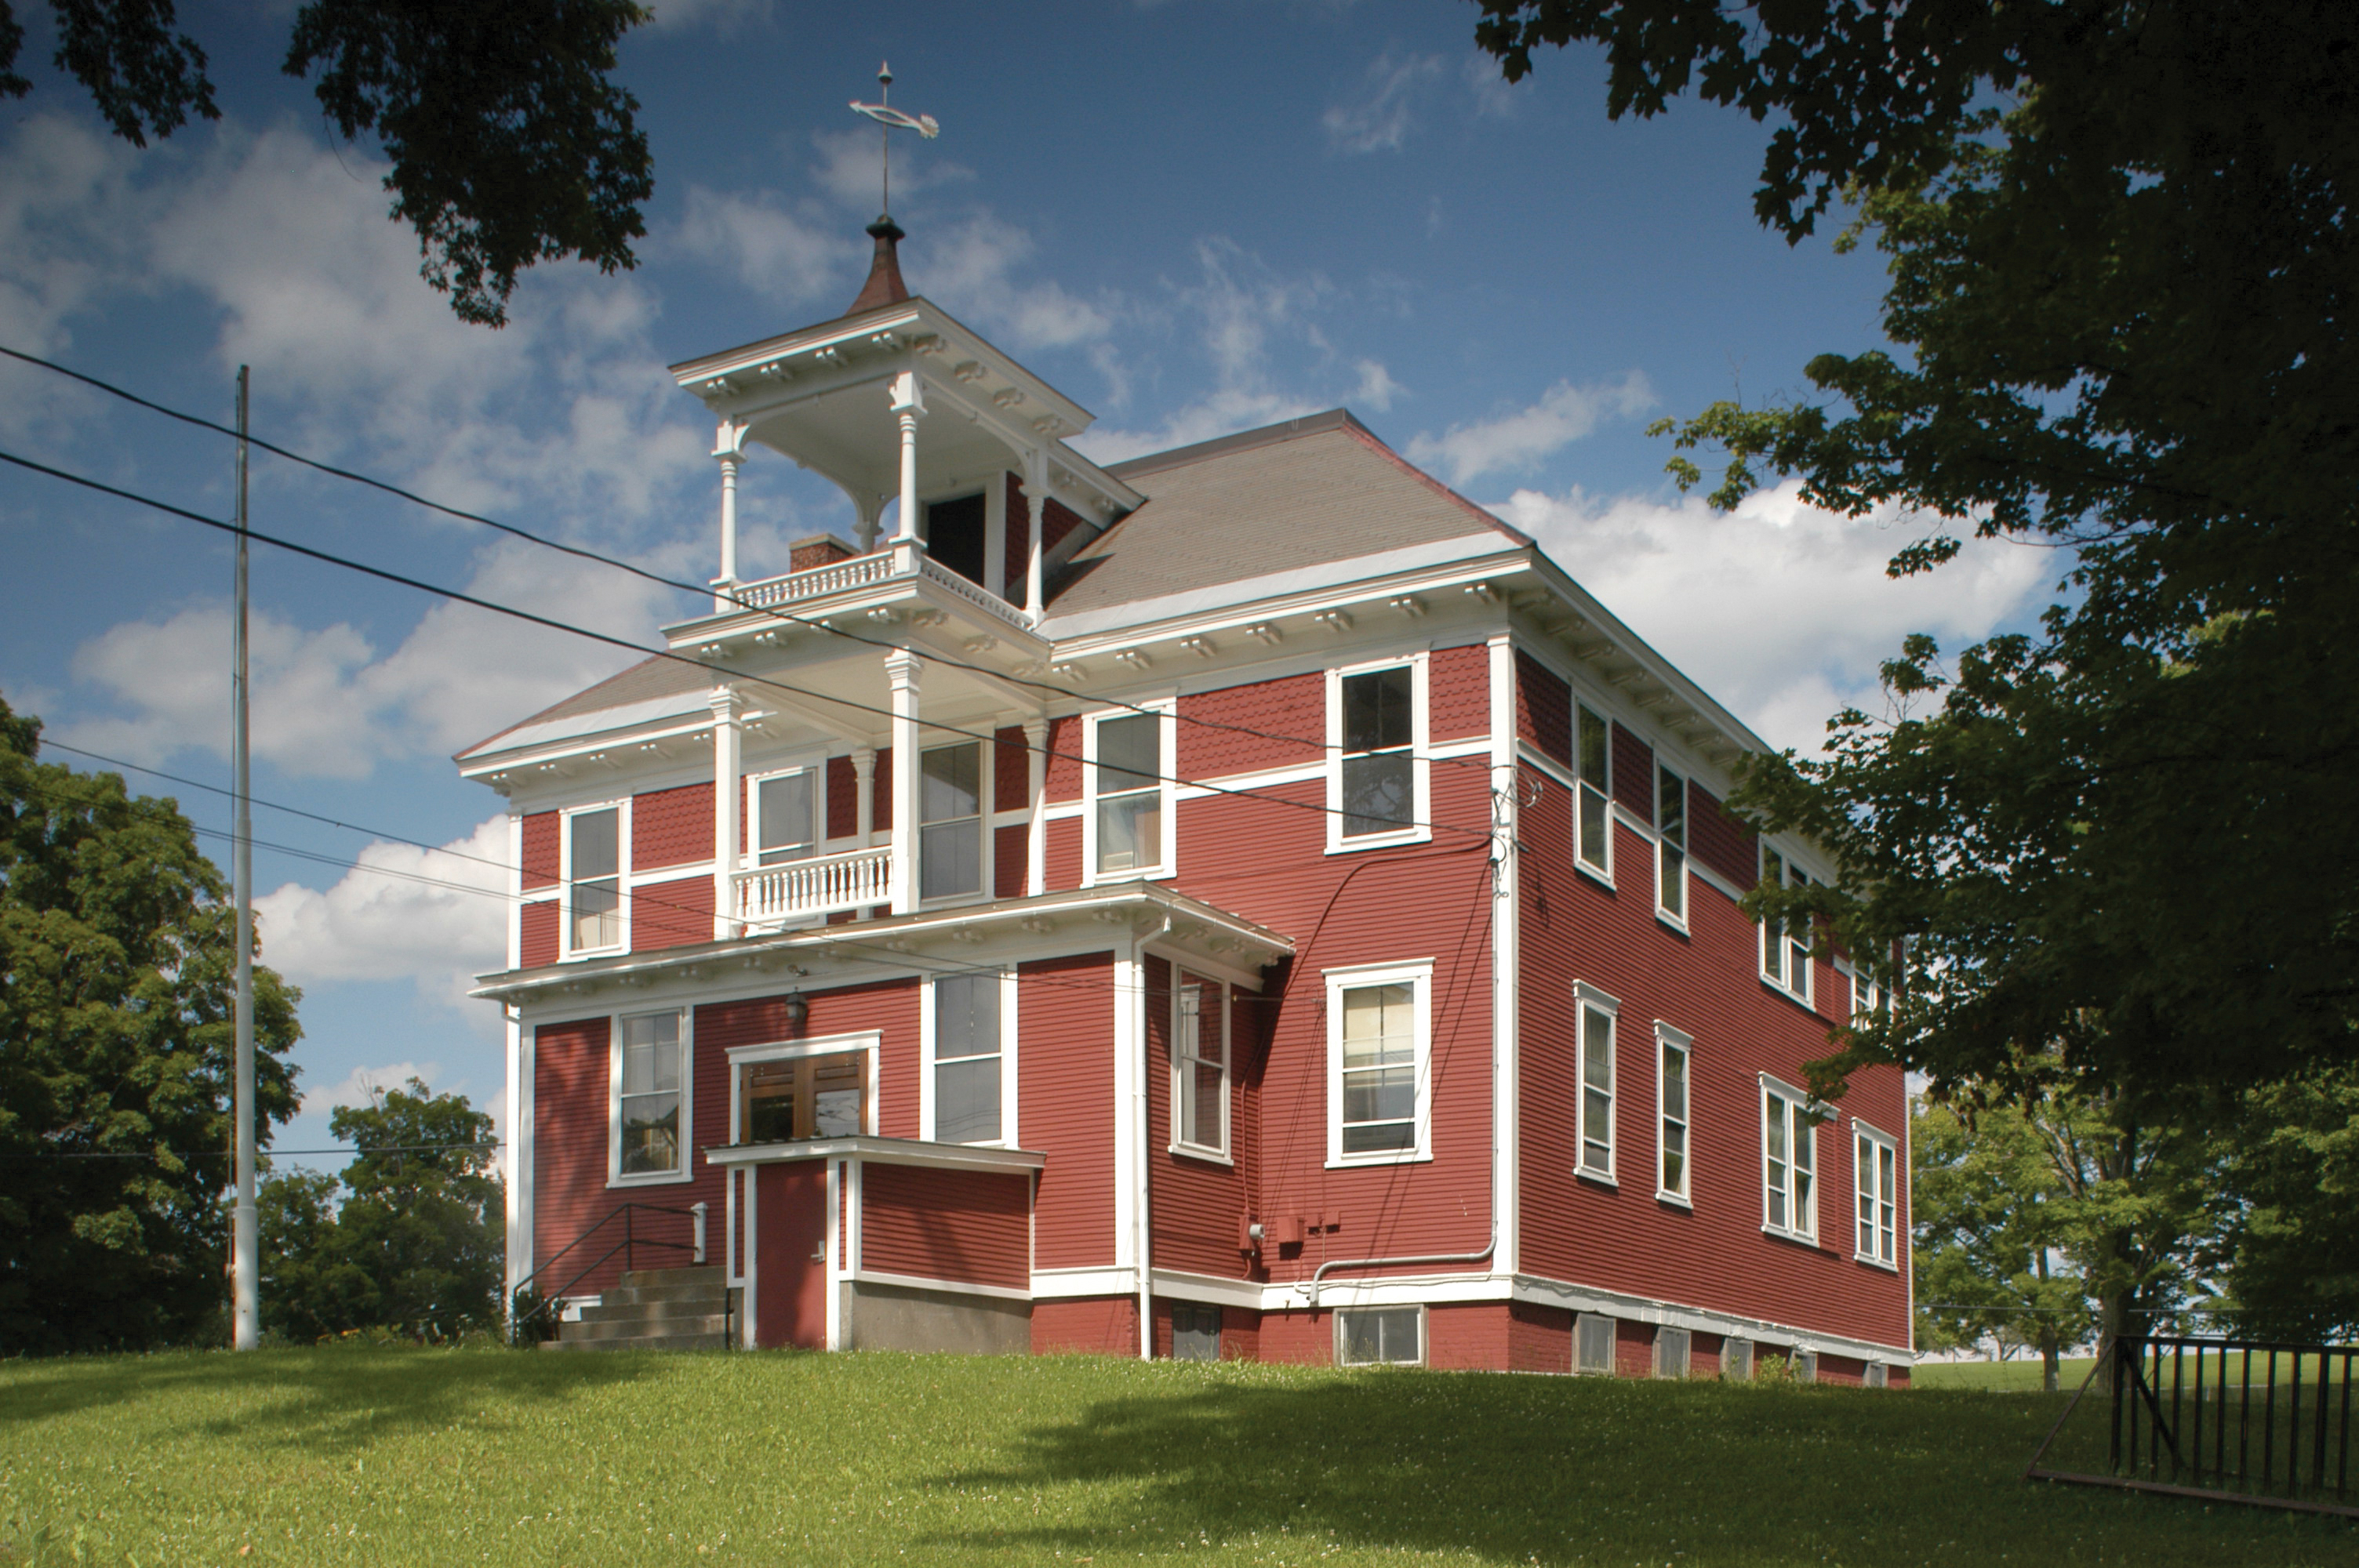 VTC's Red Schoolhouse Project, Randolph Center